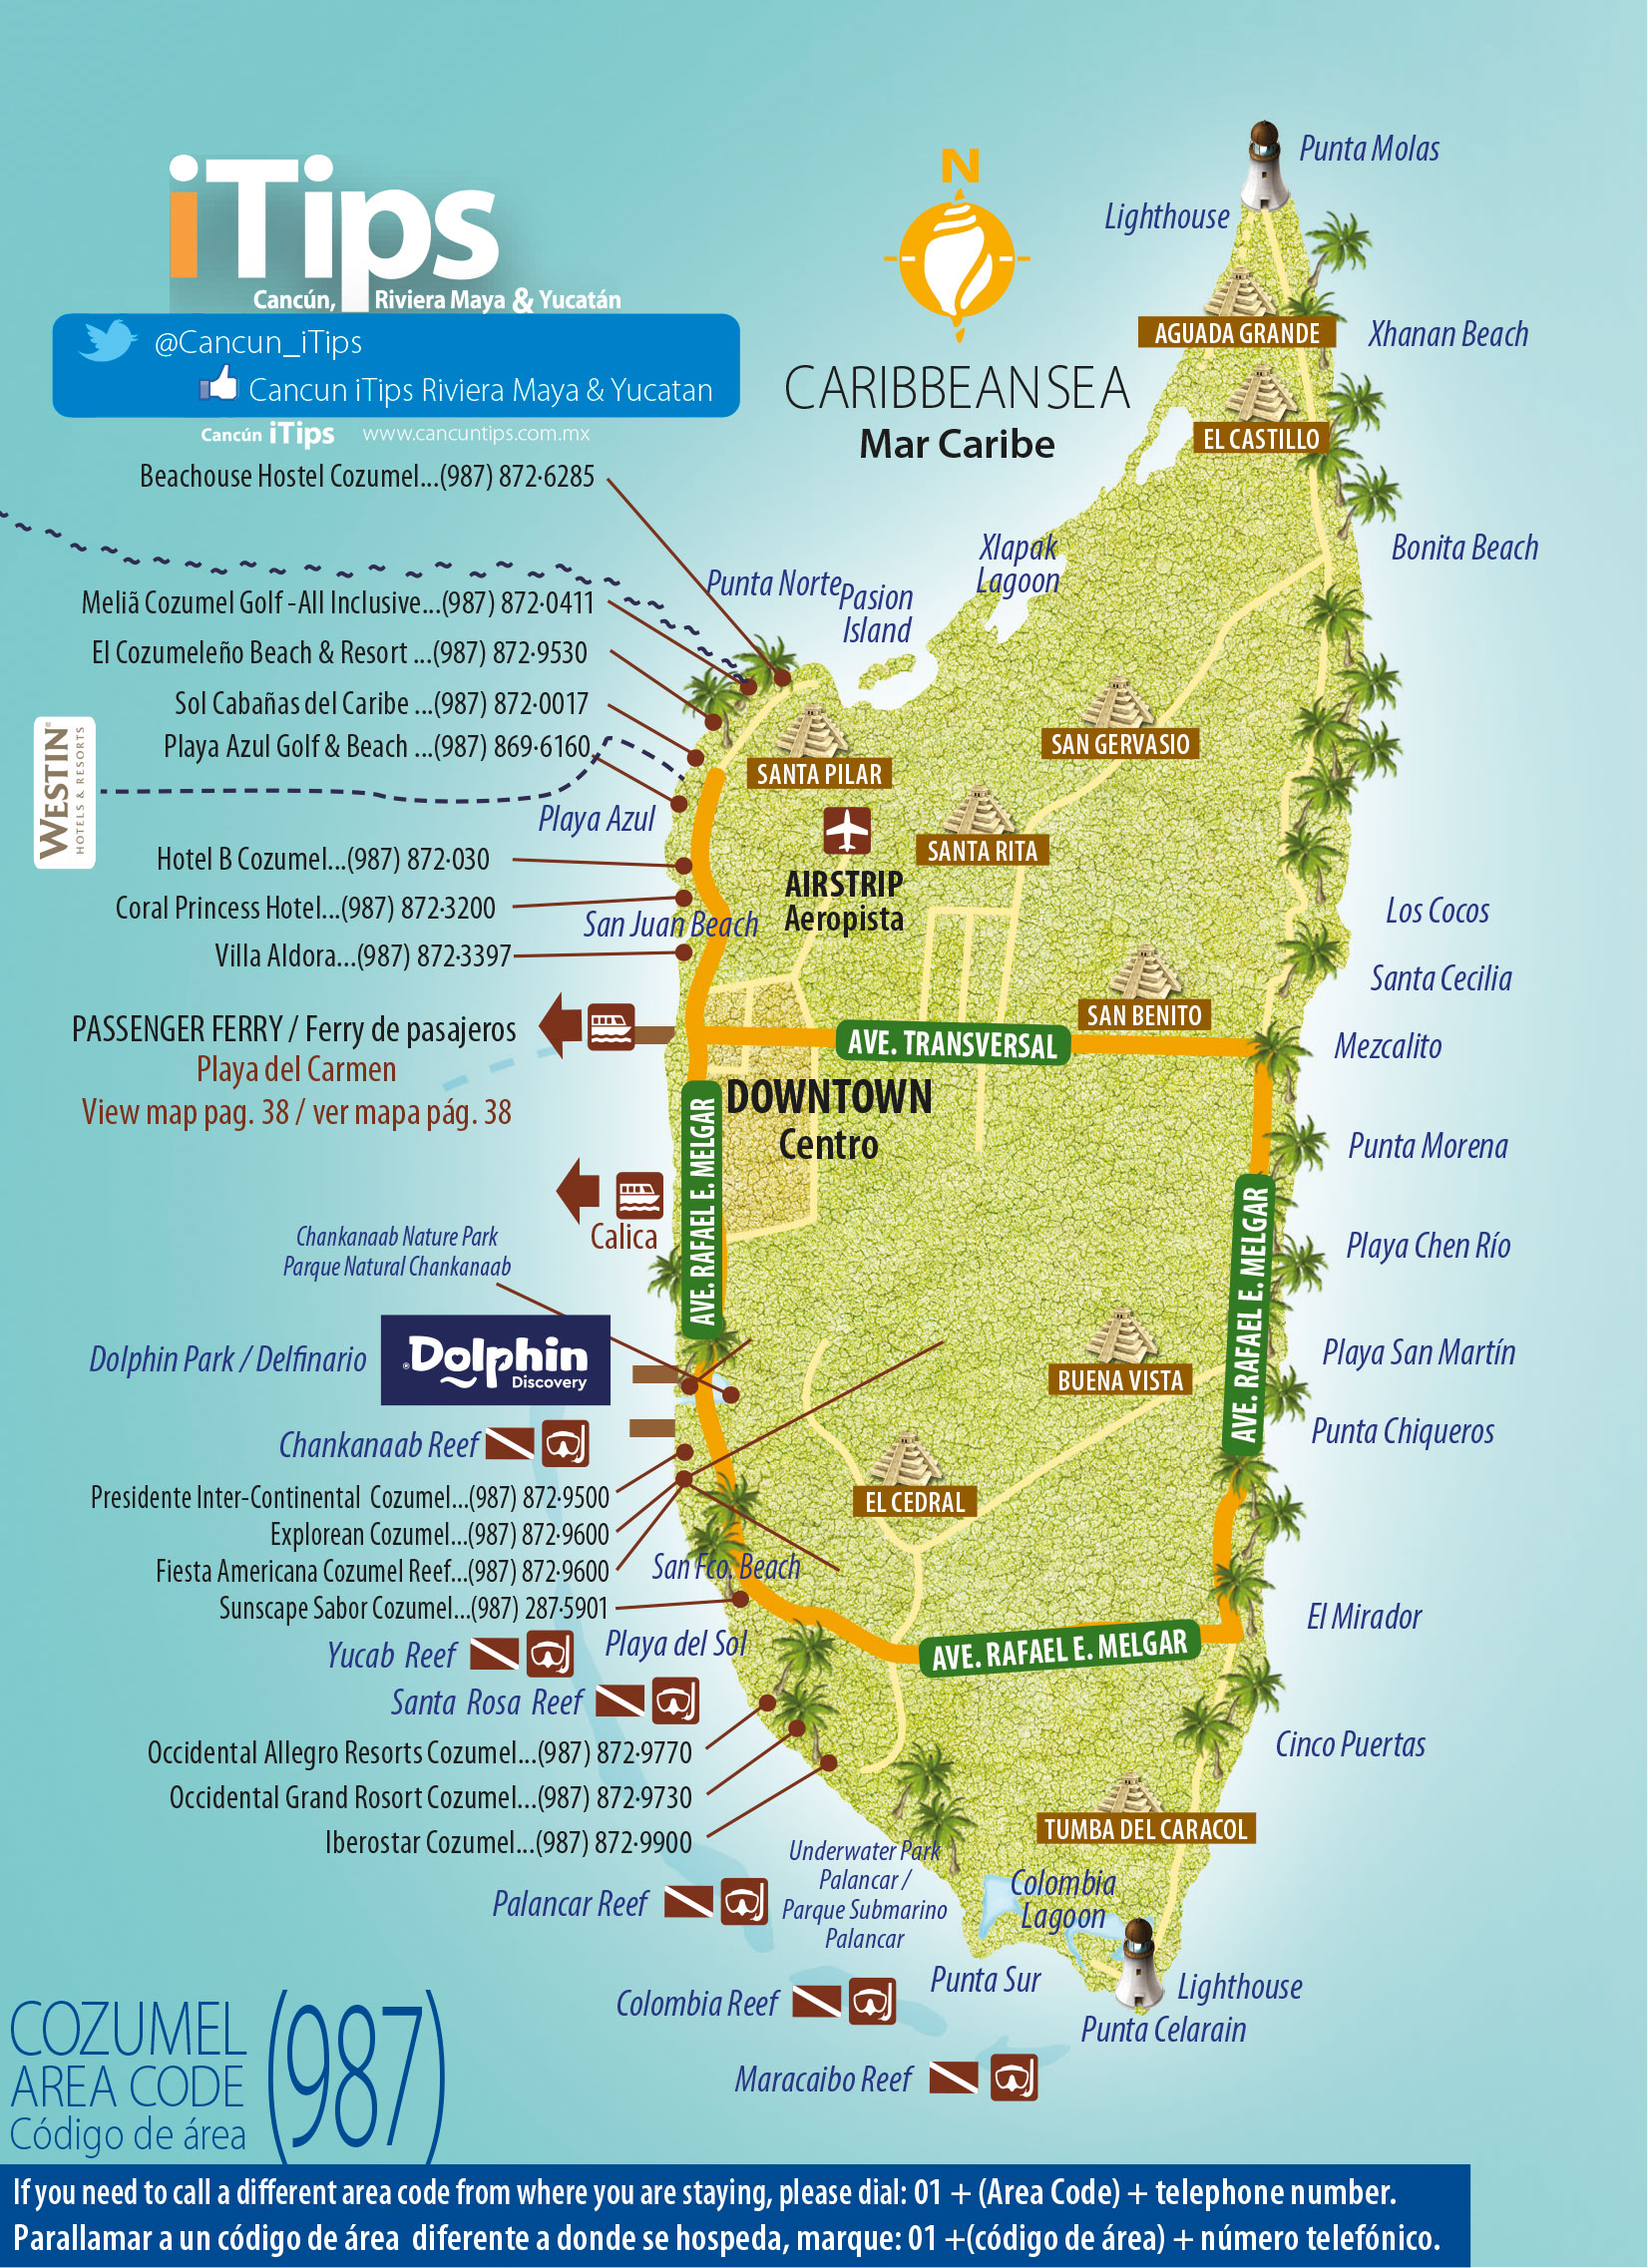 downtown cozumel map  cancun tips - downtown cozumel map